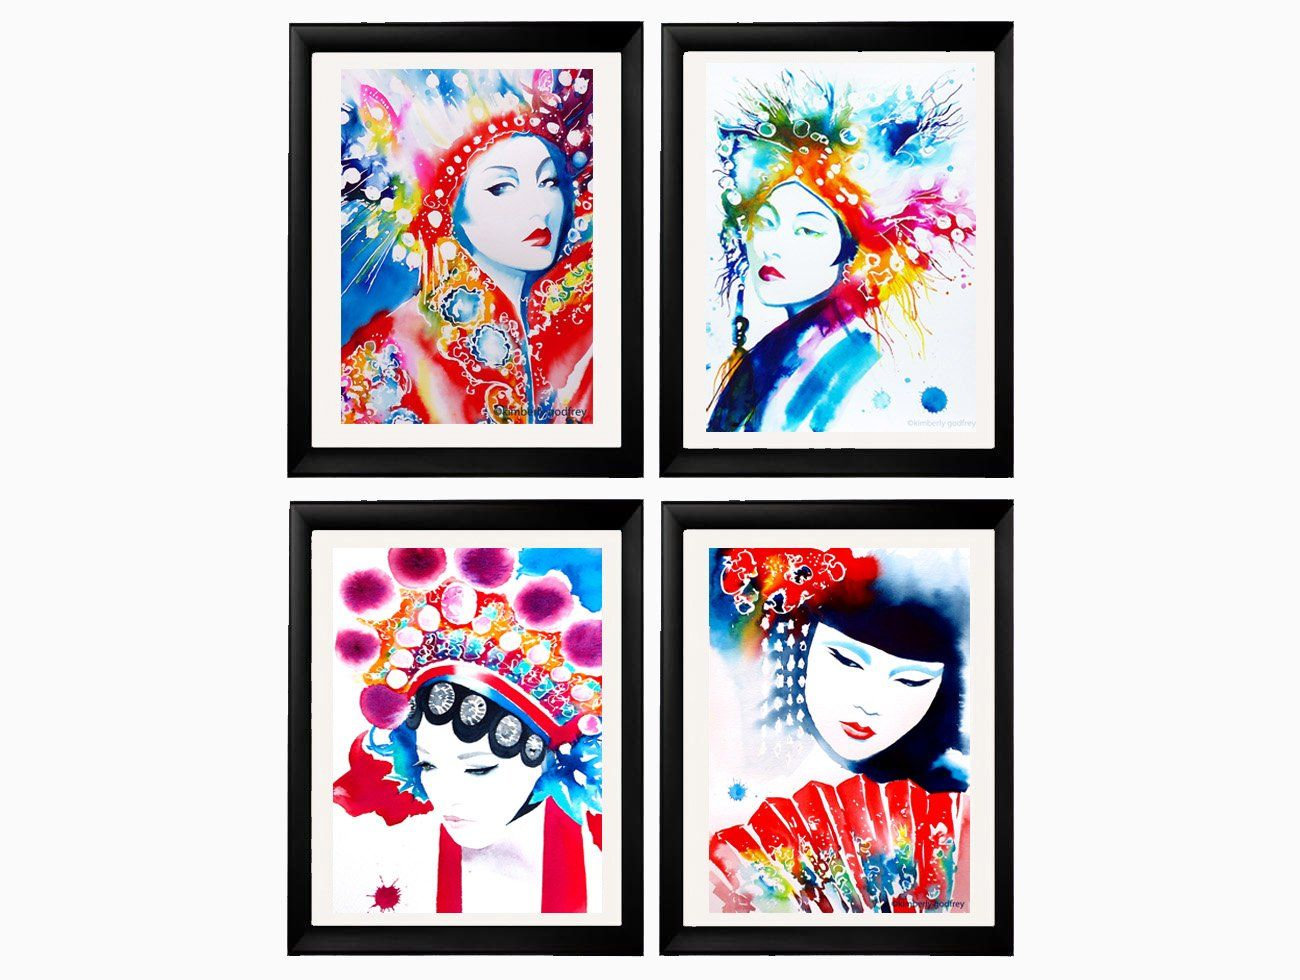 Set of 4 Fine Art Prints of Original Watercolor Fashion Illustrations China Oriental Headdresses Asian Home Decor Japanese Salon Decor Red Geisha. Just a little reminder: Airmail from England to the USA usually only takes one to three weeks to arrive - not the four to six weeks Amazon states as the shipping time Set of 4 Art Prints of original watercolor paintings from my Fashion series. Oriental Set of Four Direct from my studio, in Suffolk, England, signed & dated. Carefully packaged…